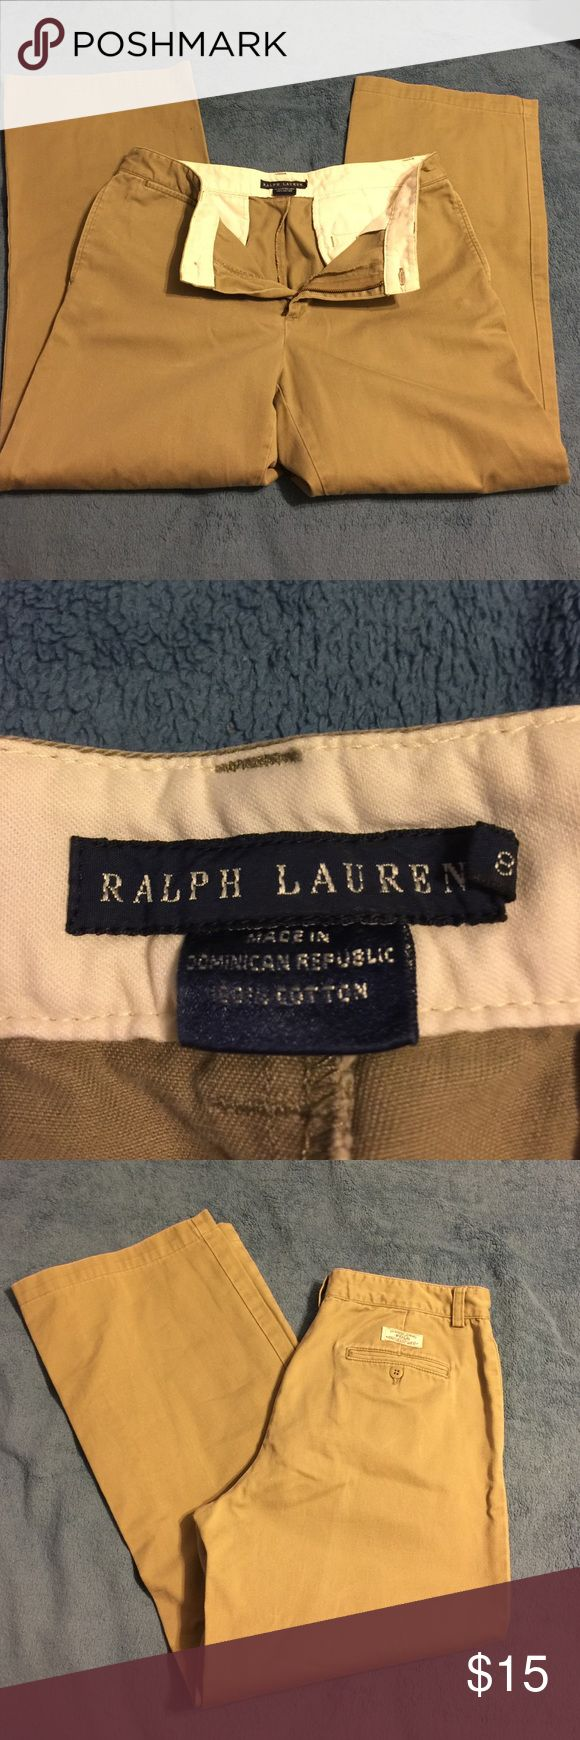 Ralph Lauren khaki pants Ralph Lauren polo khaki pants. Size 8. Classic chino polo design. Want to dress your son in style, well he needs these polo pants. Very classy and in style pants. Great price for kids polo khakis that are like new. Price is firm. 😀 Ralph Lauren Bottoms Casual